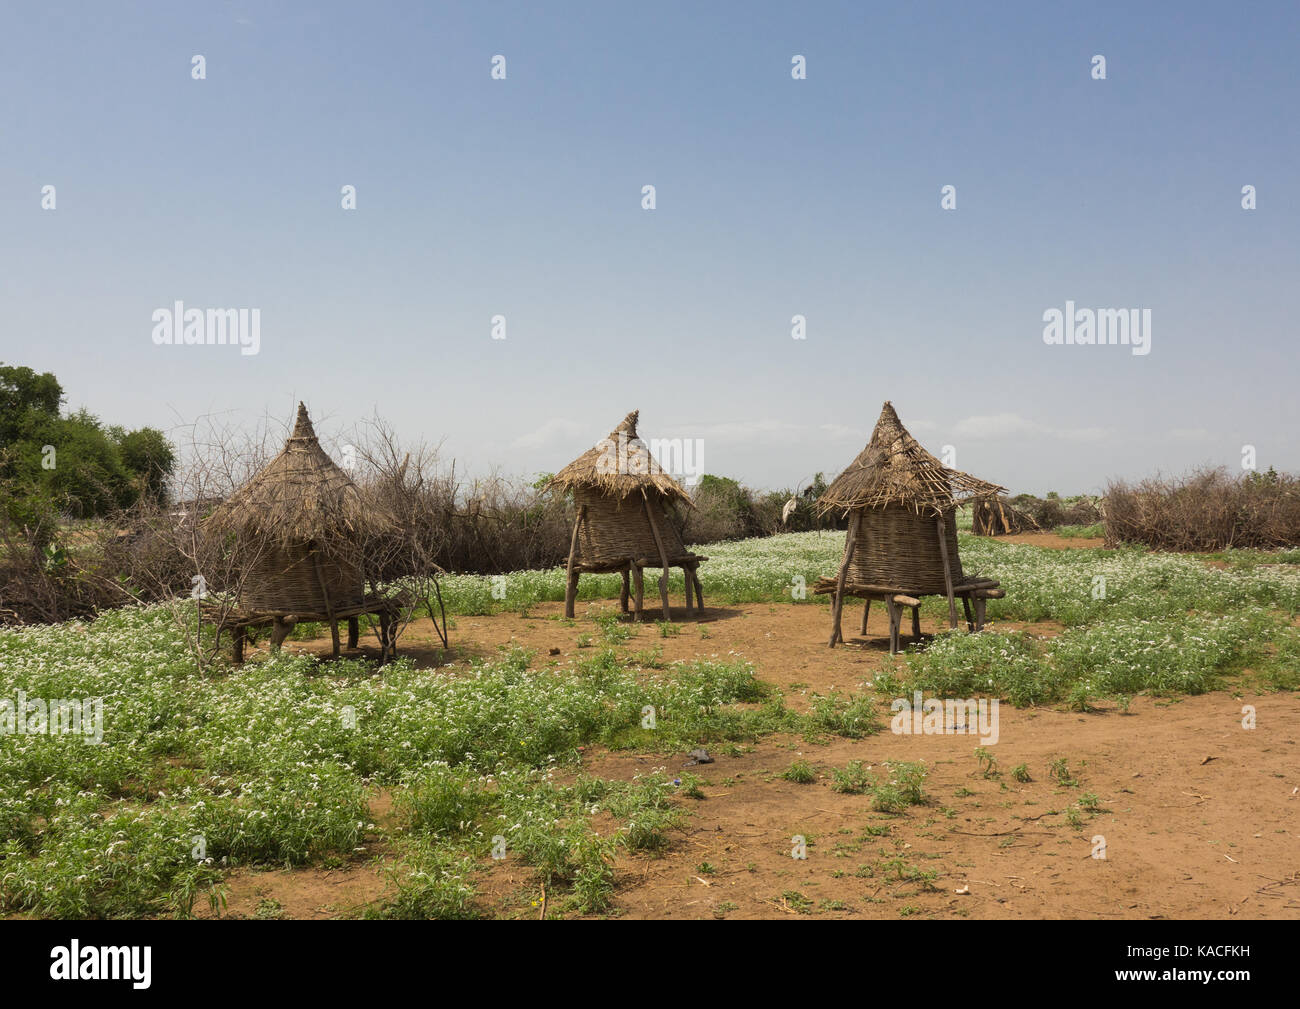 Traditional Hut in a Kangate Village, Omo Valley, Ethiopia - Stock Image